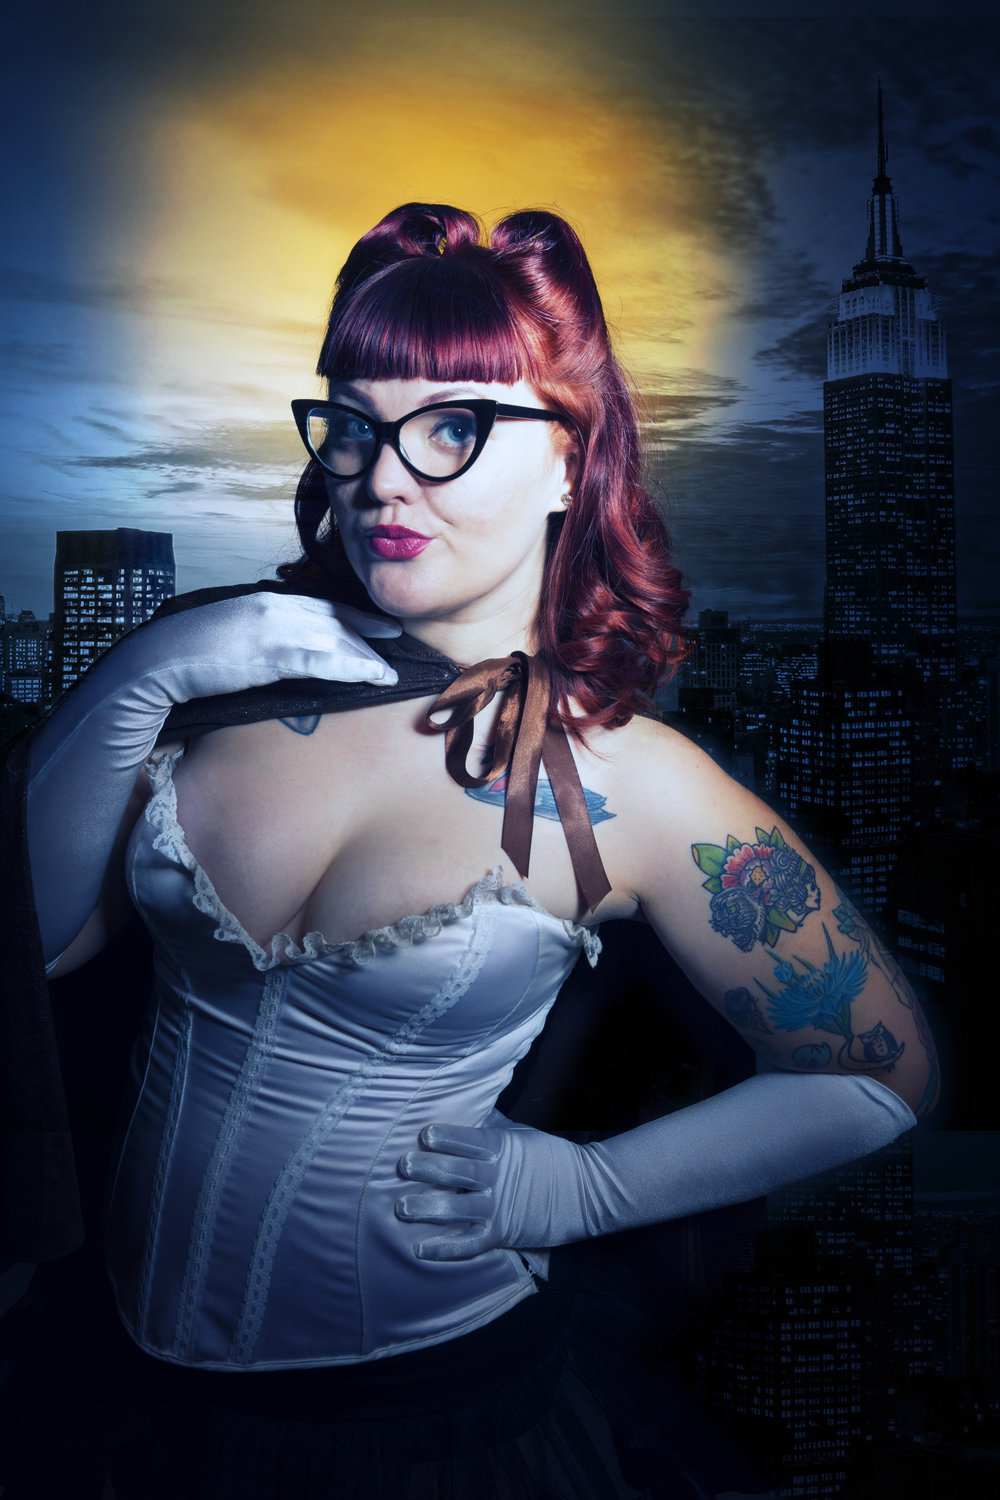 las_vegas_fantasy_photography_inclusive_package_photographer_casey_jade_composition_artist_costume_3.jpg